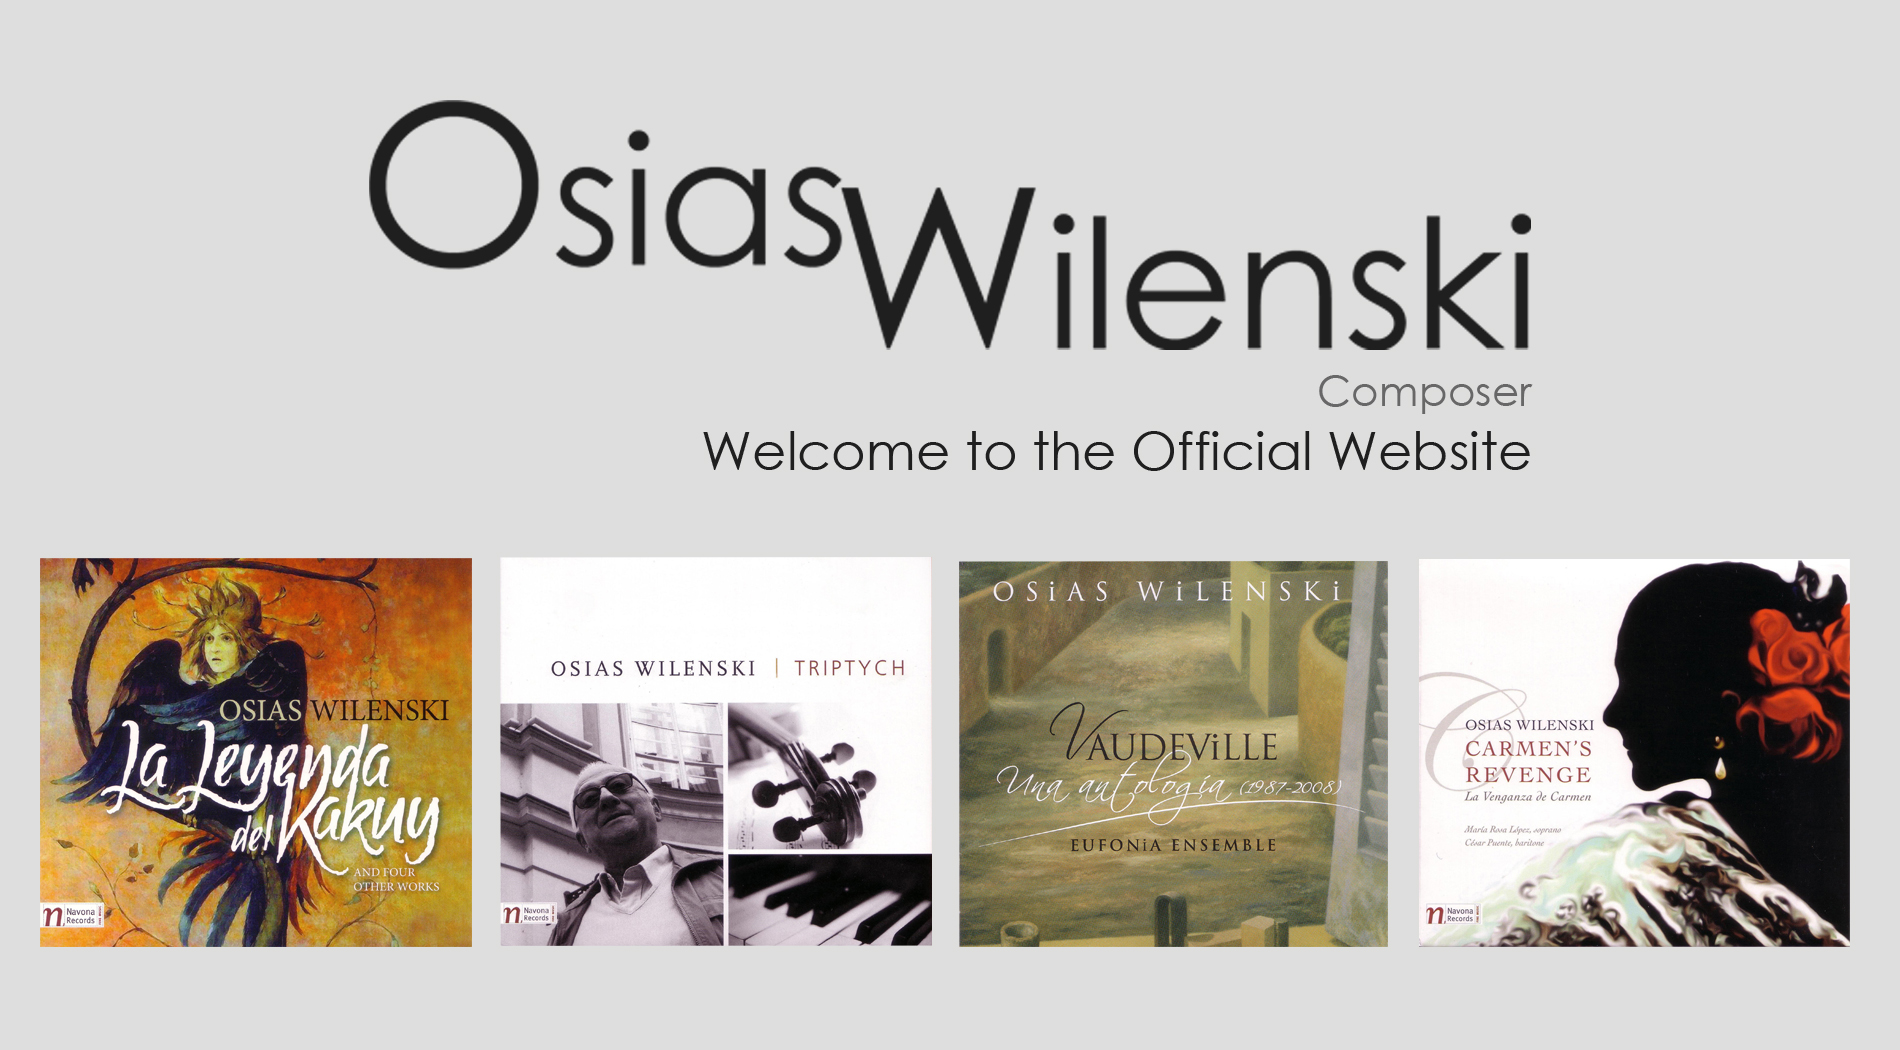 OSIAS WILENSKI CD